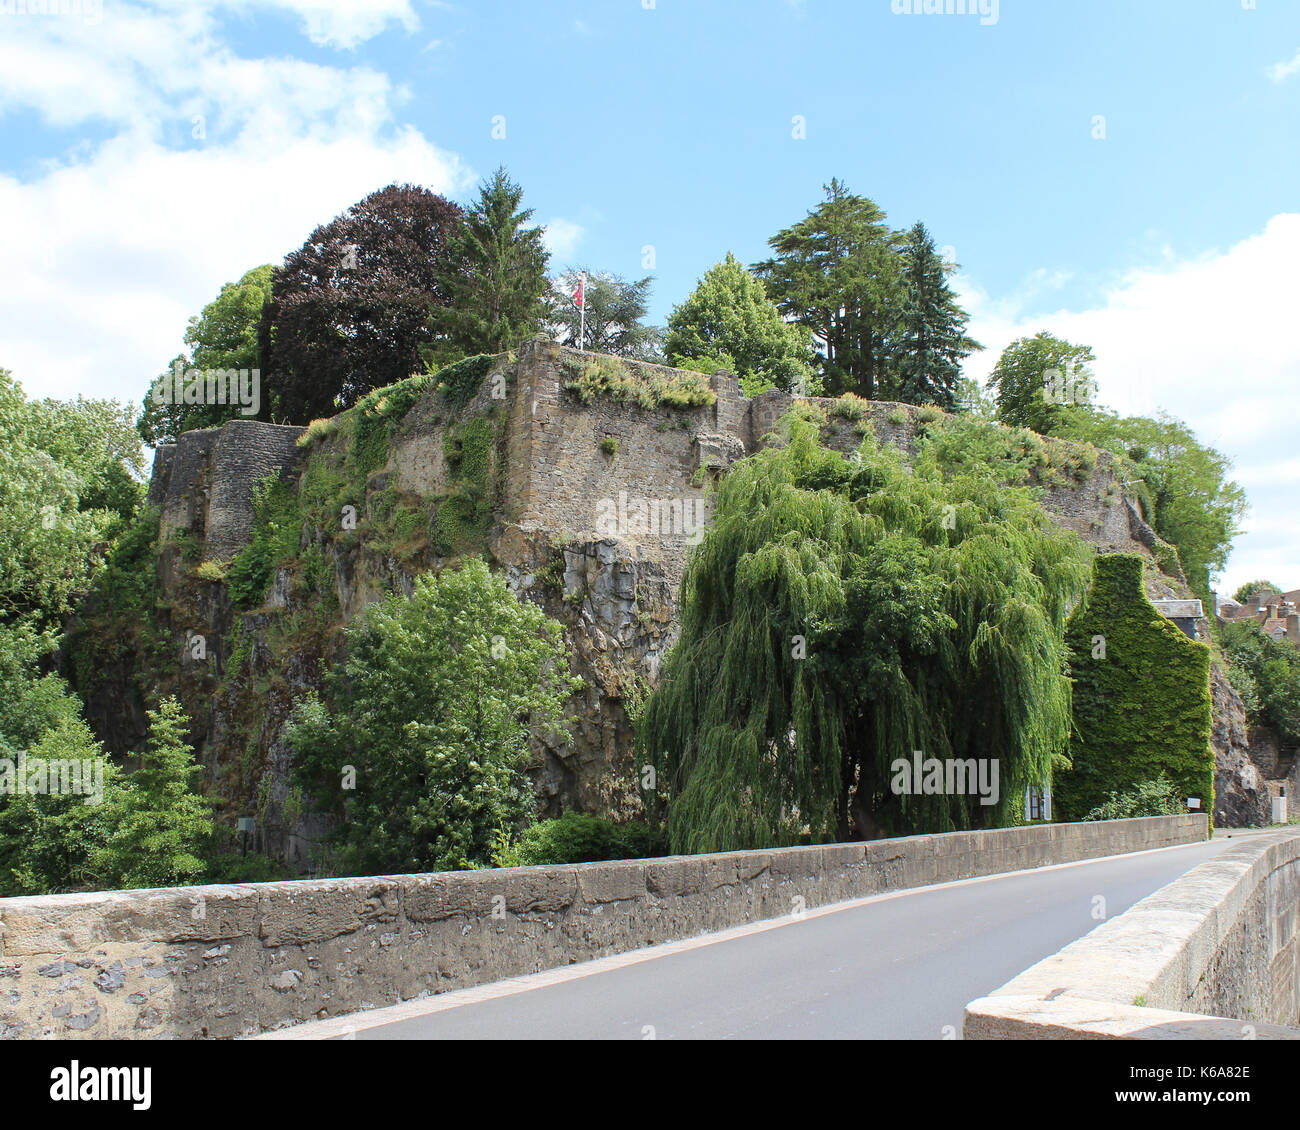 View of the ruins of the medieval Chateau Fresnay, from the bridge over the River Sarthe in Fresnay-sur-Sarthe in France. - Stock Image